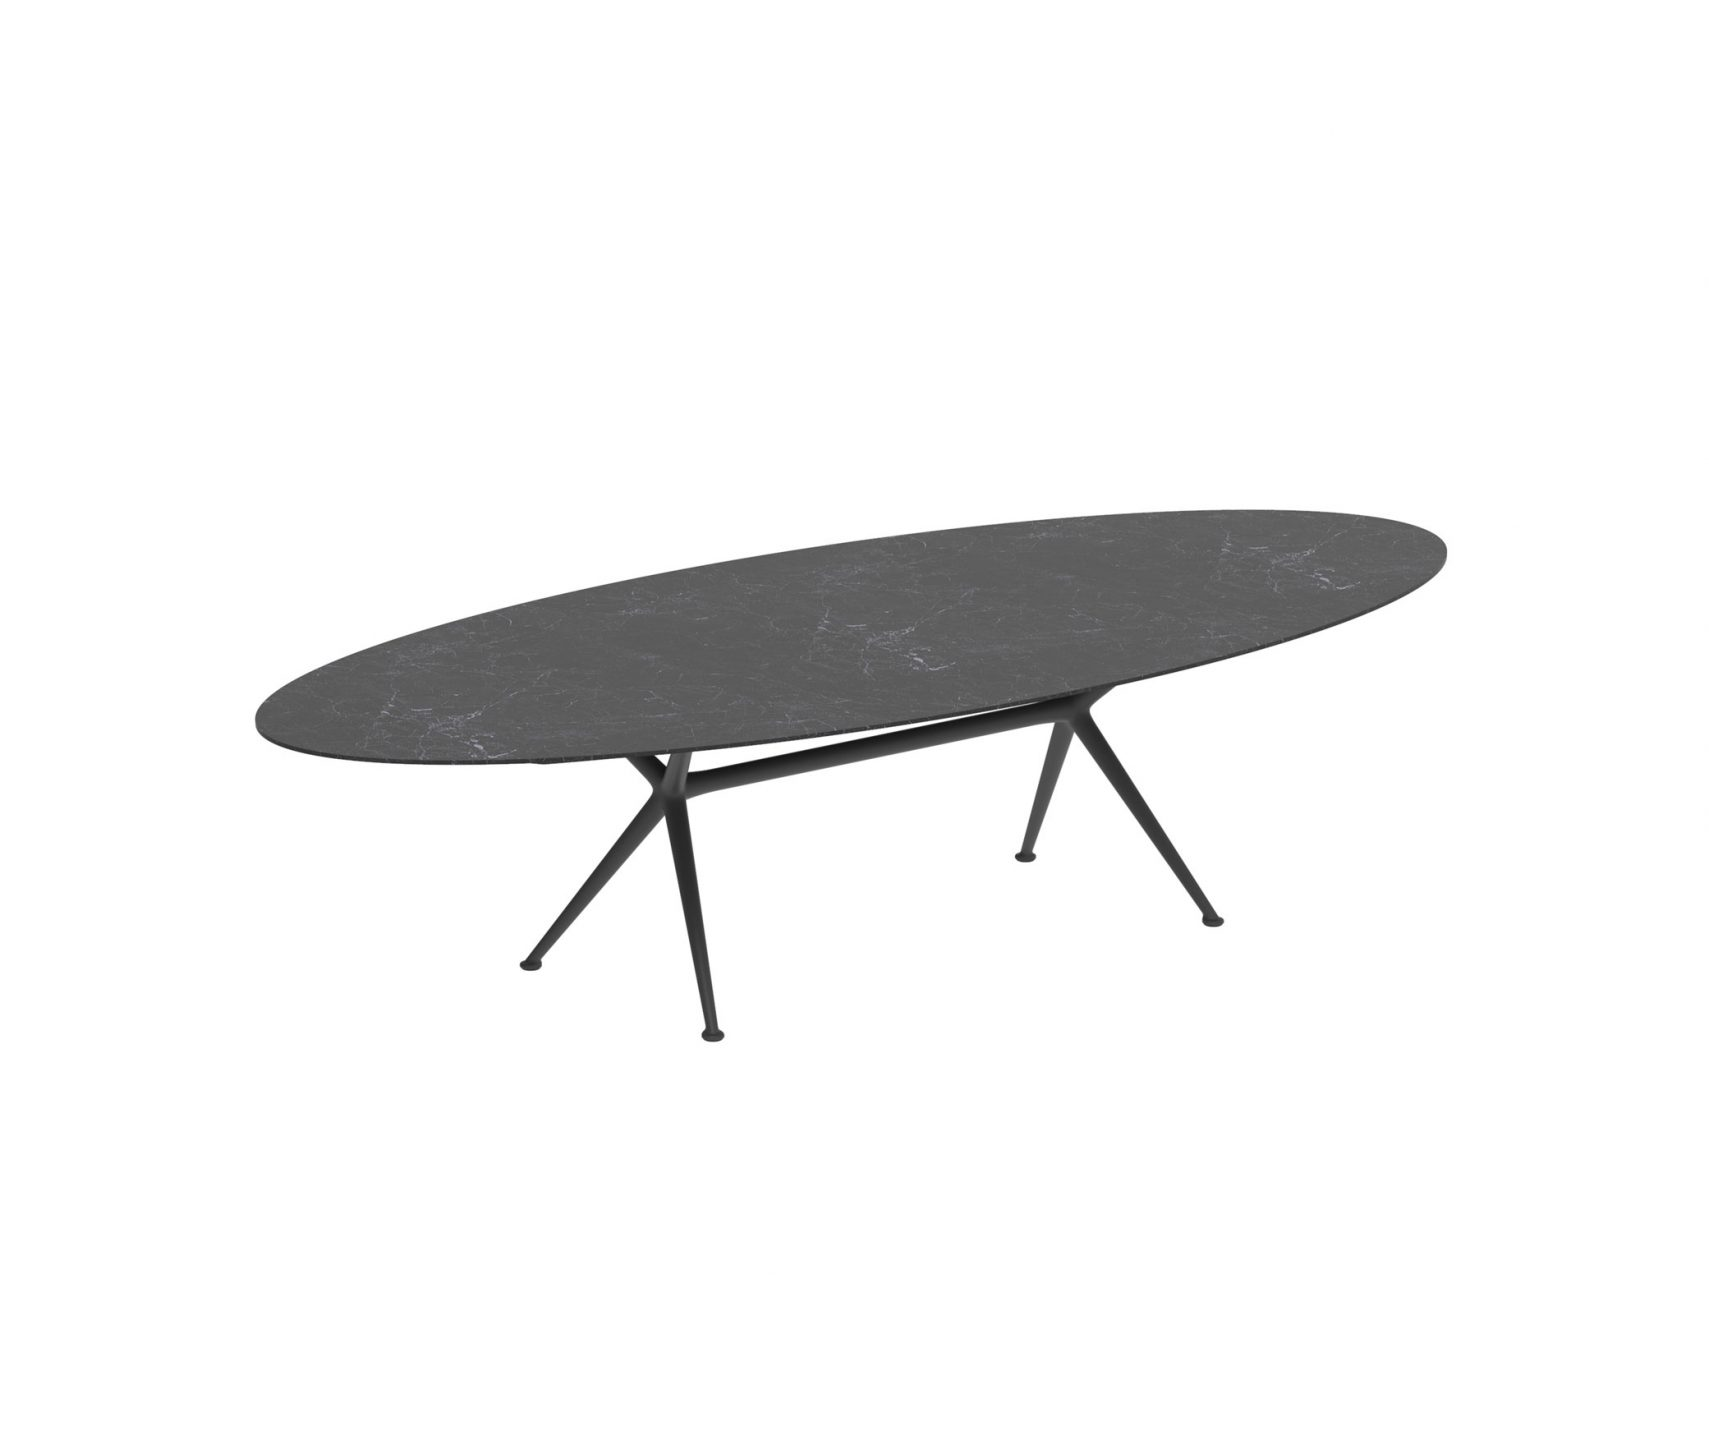 Royal-Botania_Exes-Ellipse-Table_int_products